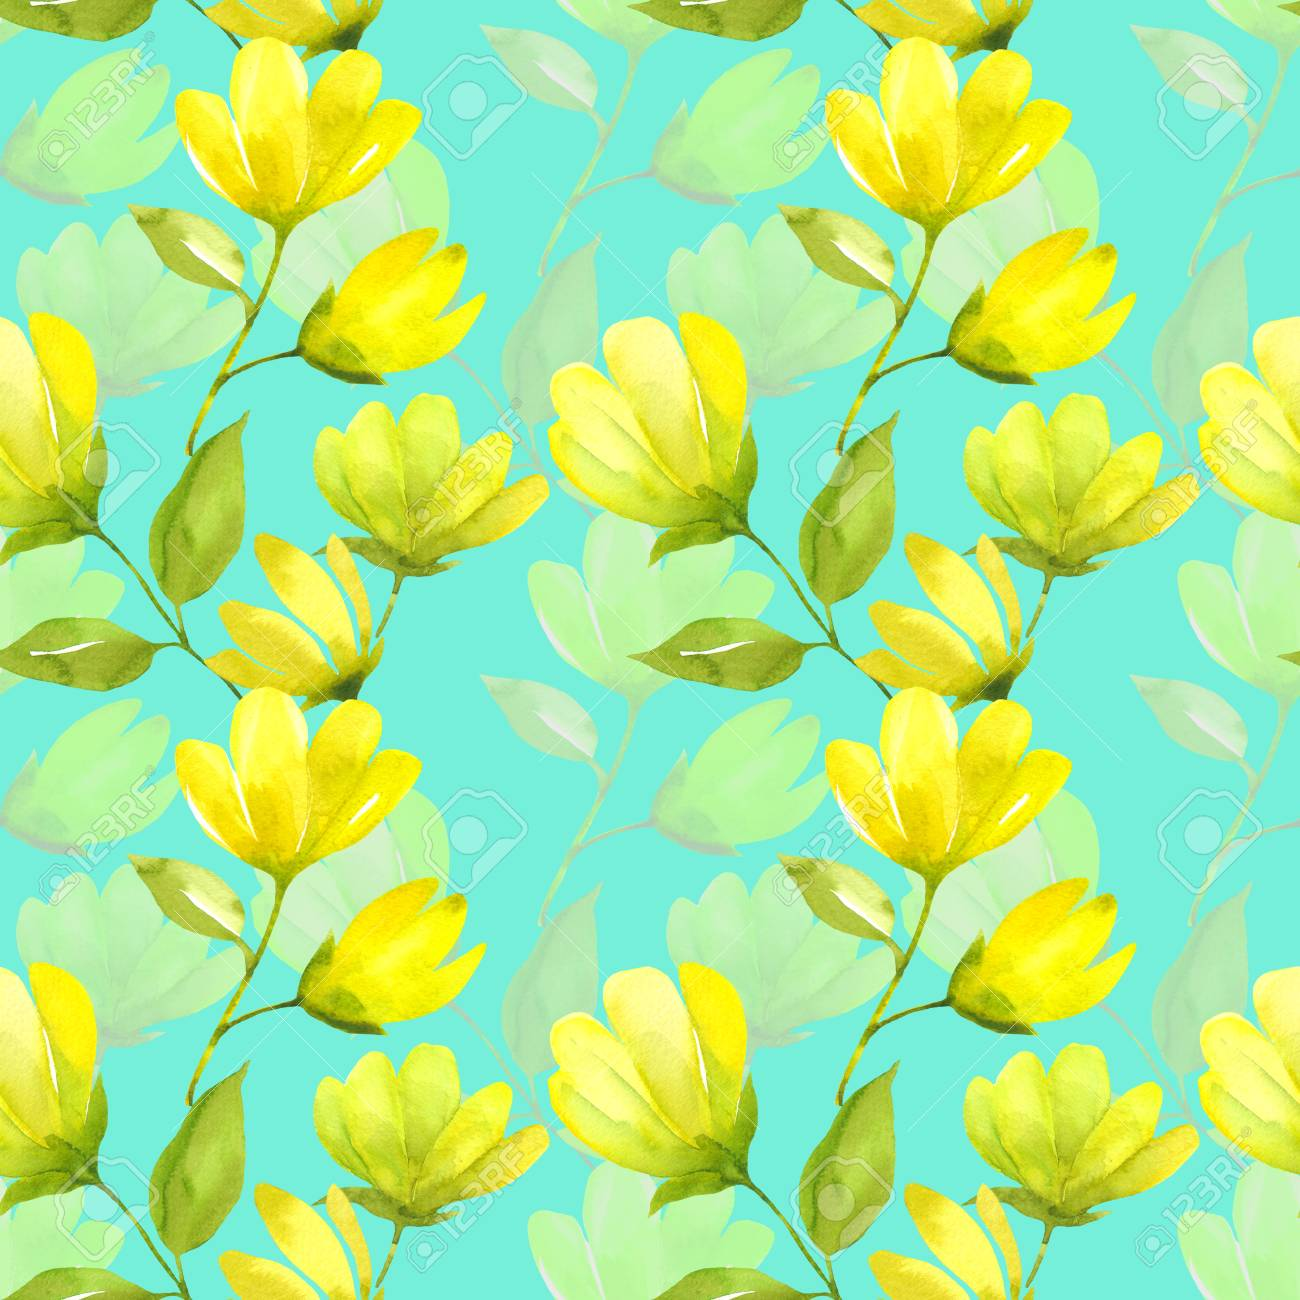 Floral seamless pattern watercolor yellow spring flower magnolia floral seamless pattern watercolor yellow spring flower magnolia spring background with beatifull yellow flowers mightylinksfo Gallery